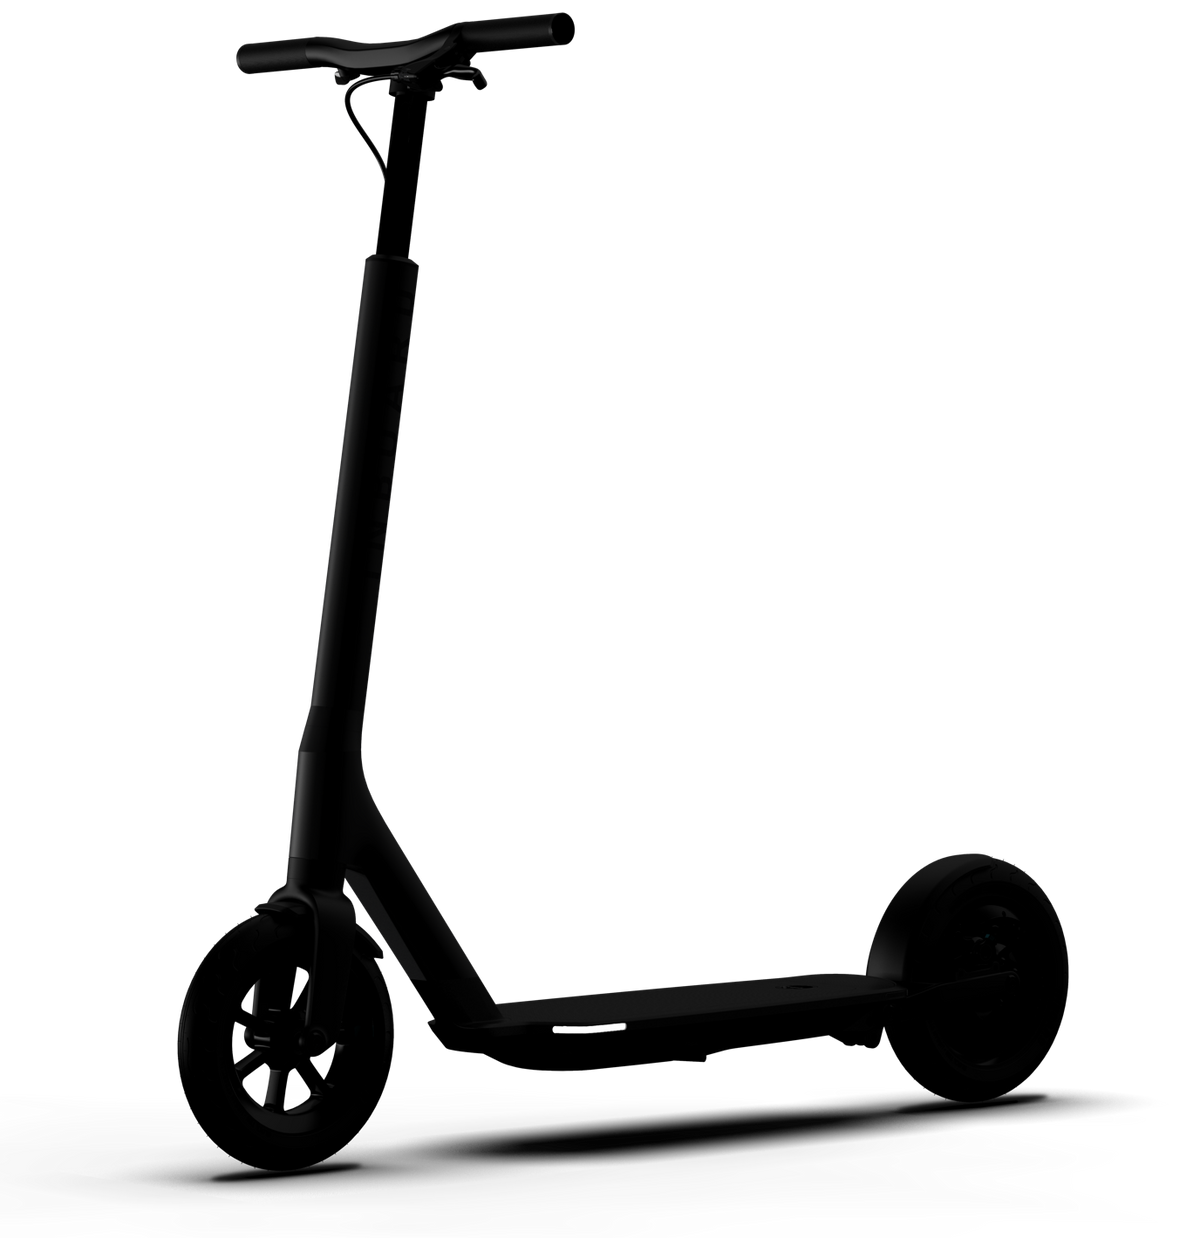 Inboard G1 Scooter